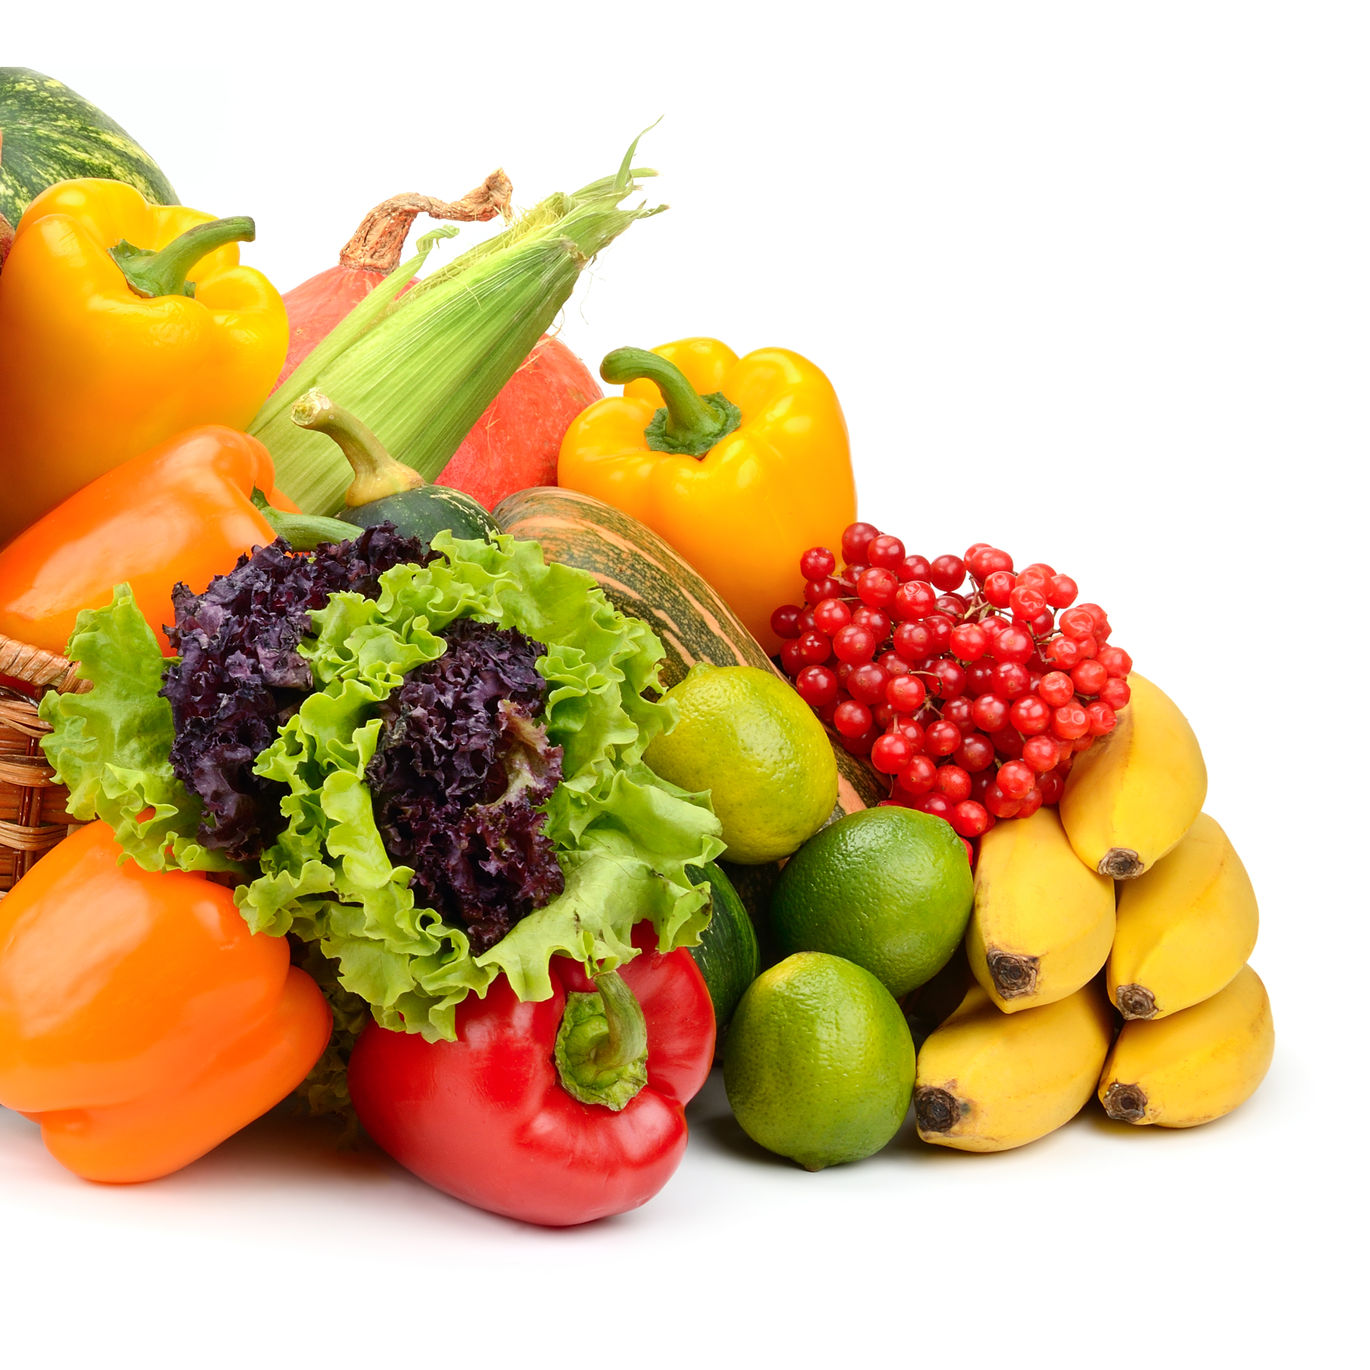 fruit and vegetables prevent cognitive disorders like Alzheimer's